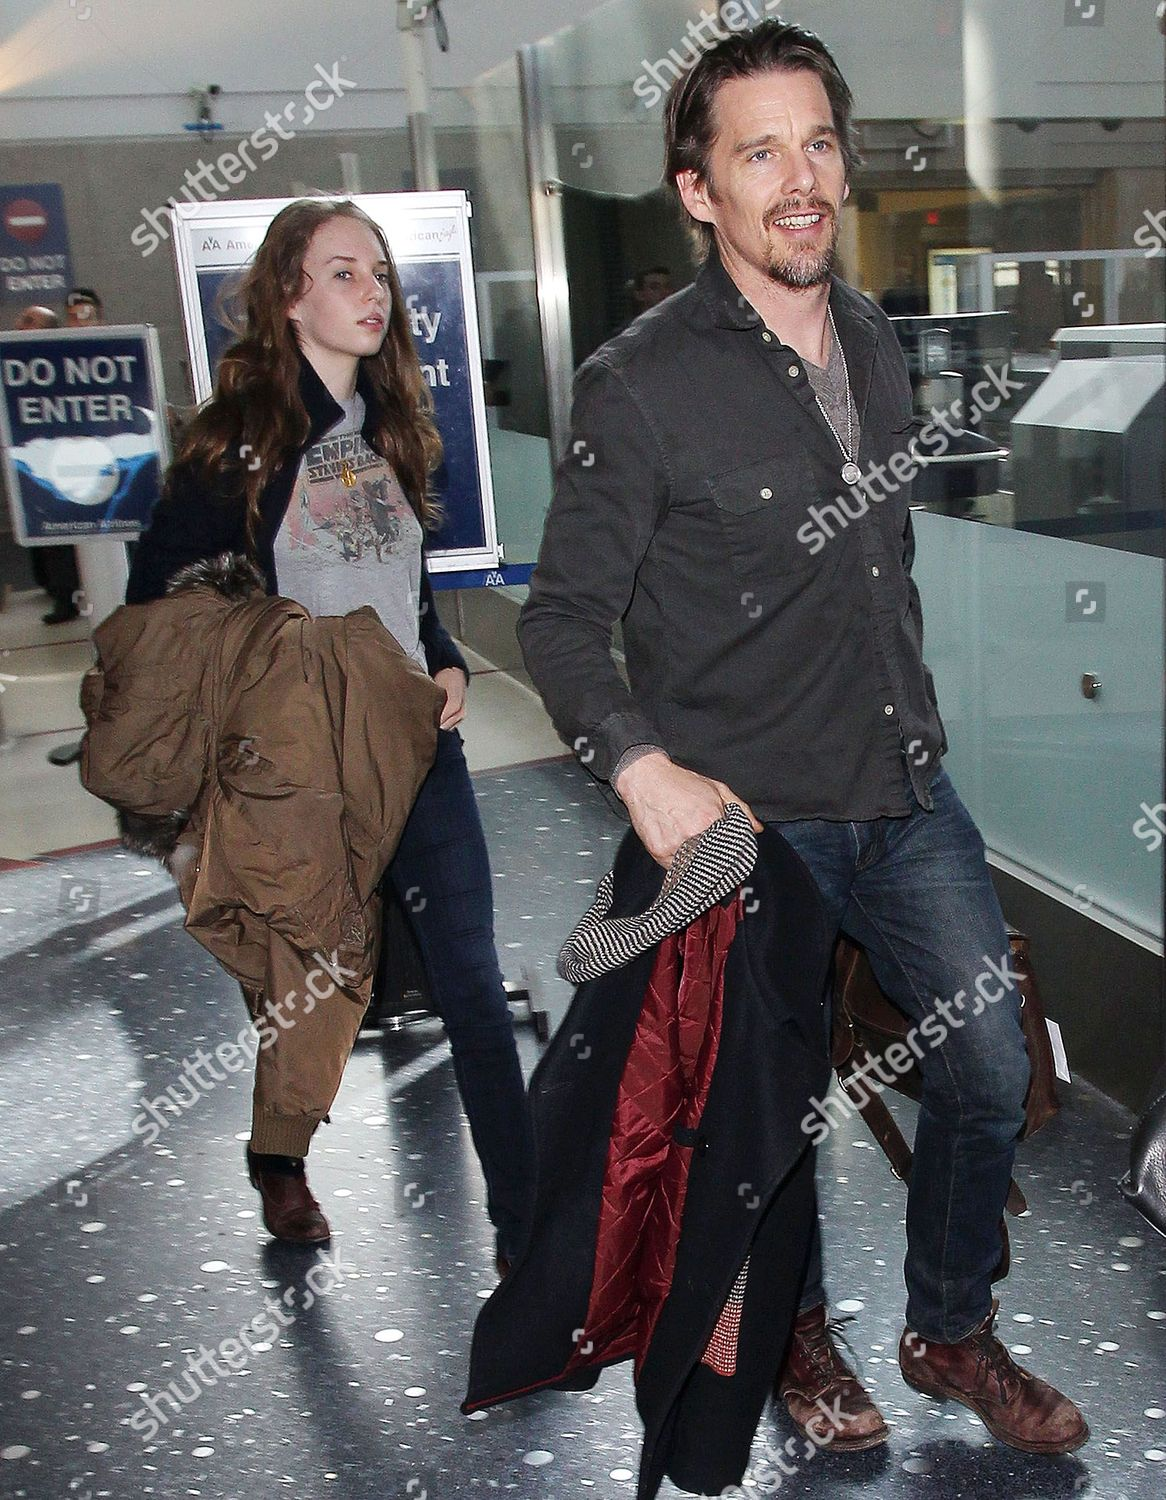 Stock photo of Ethan Hawke at the Los Angeles International Airport, America - 09 Feb 2014